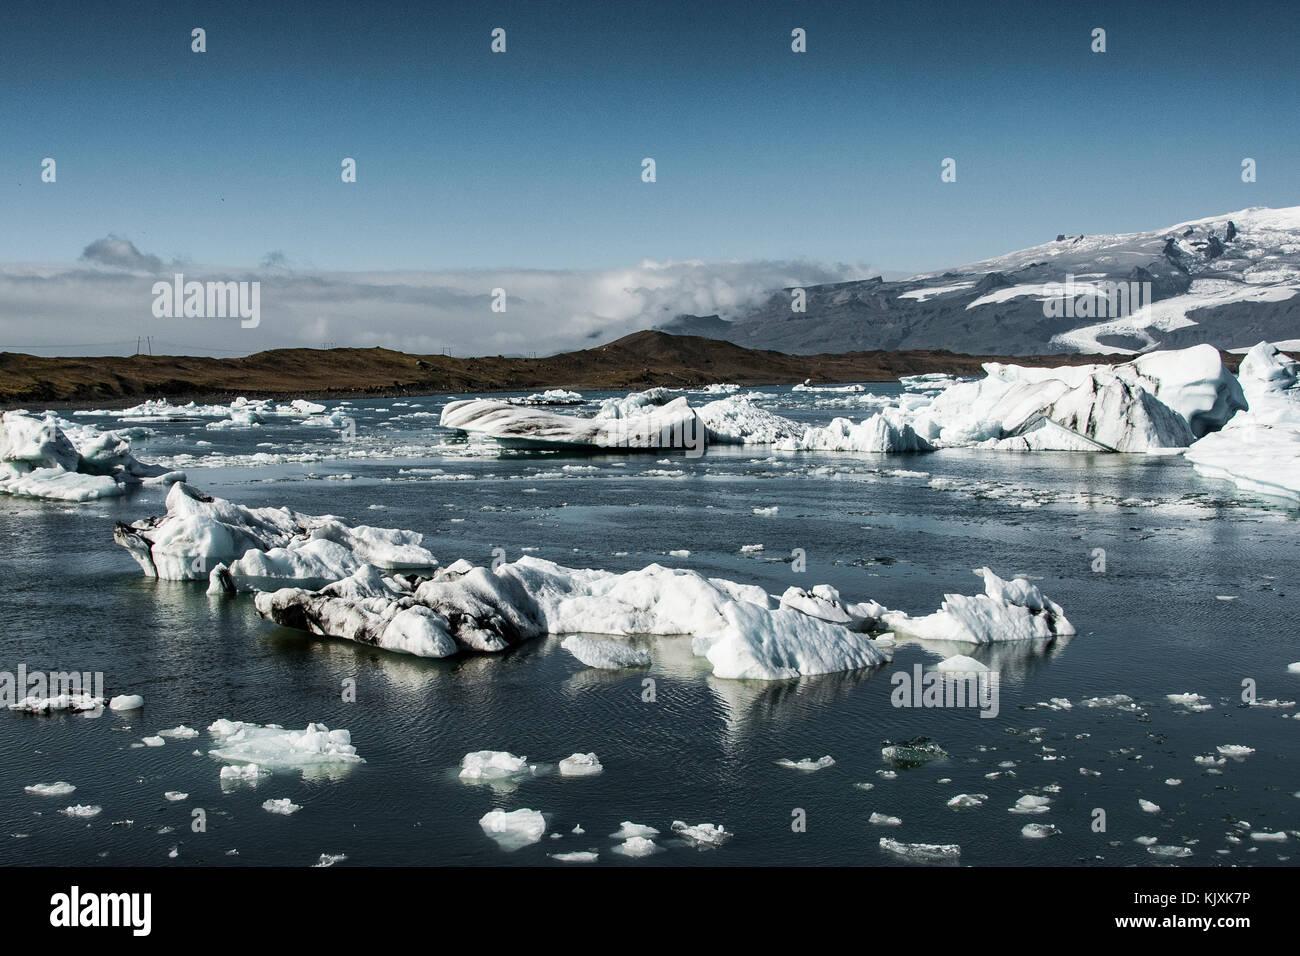 Groups of icebergs drift on the lake lagoon formed by the melting of the Jokulsarlon glacier - Stock Image